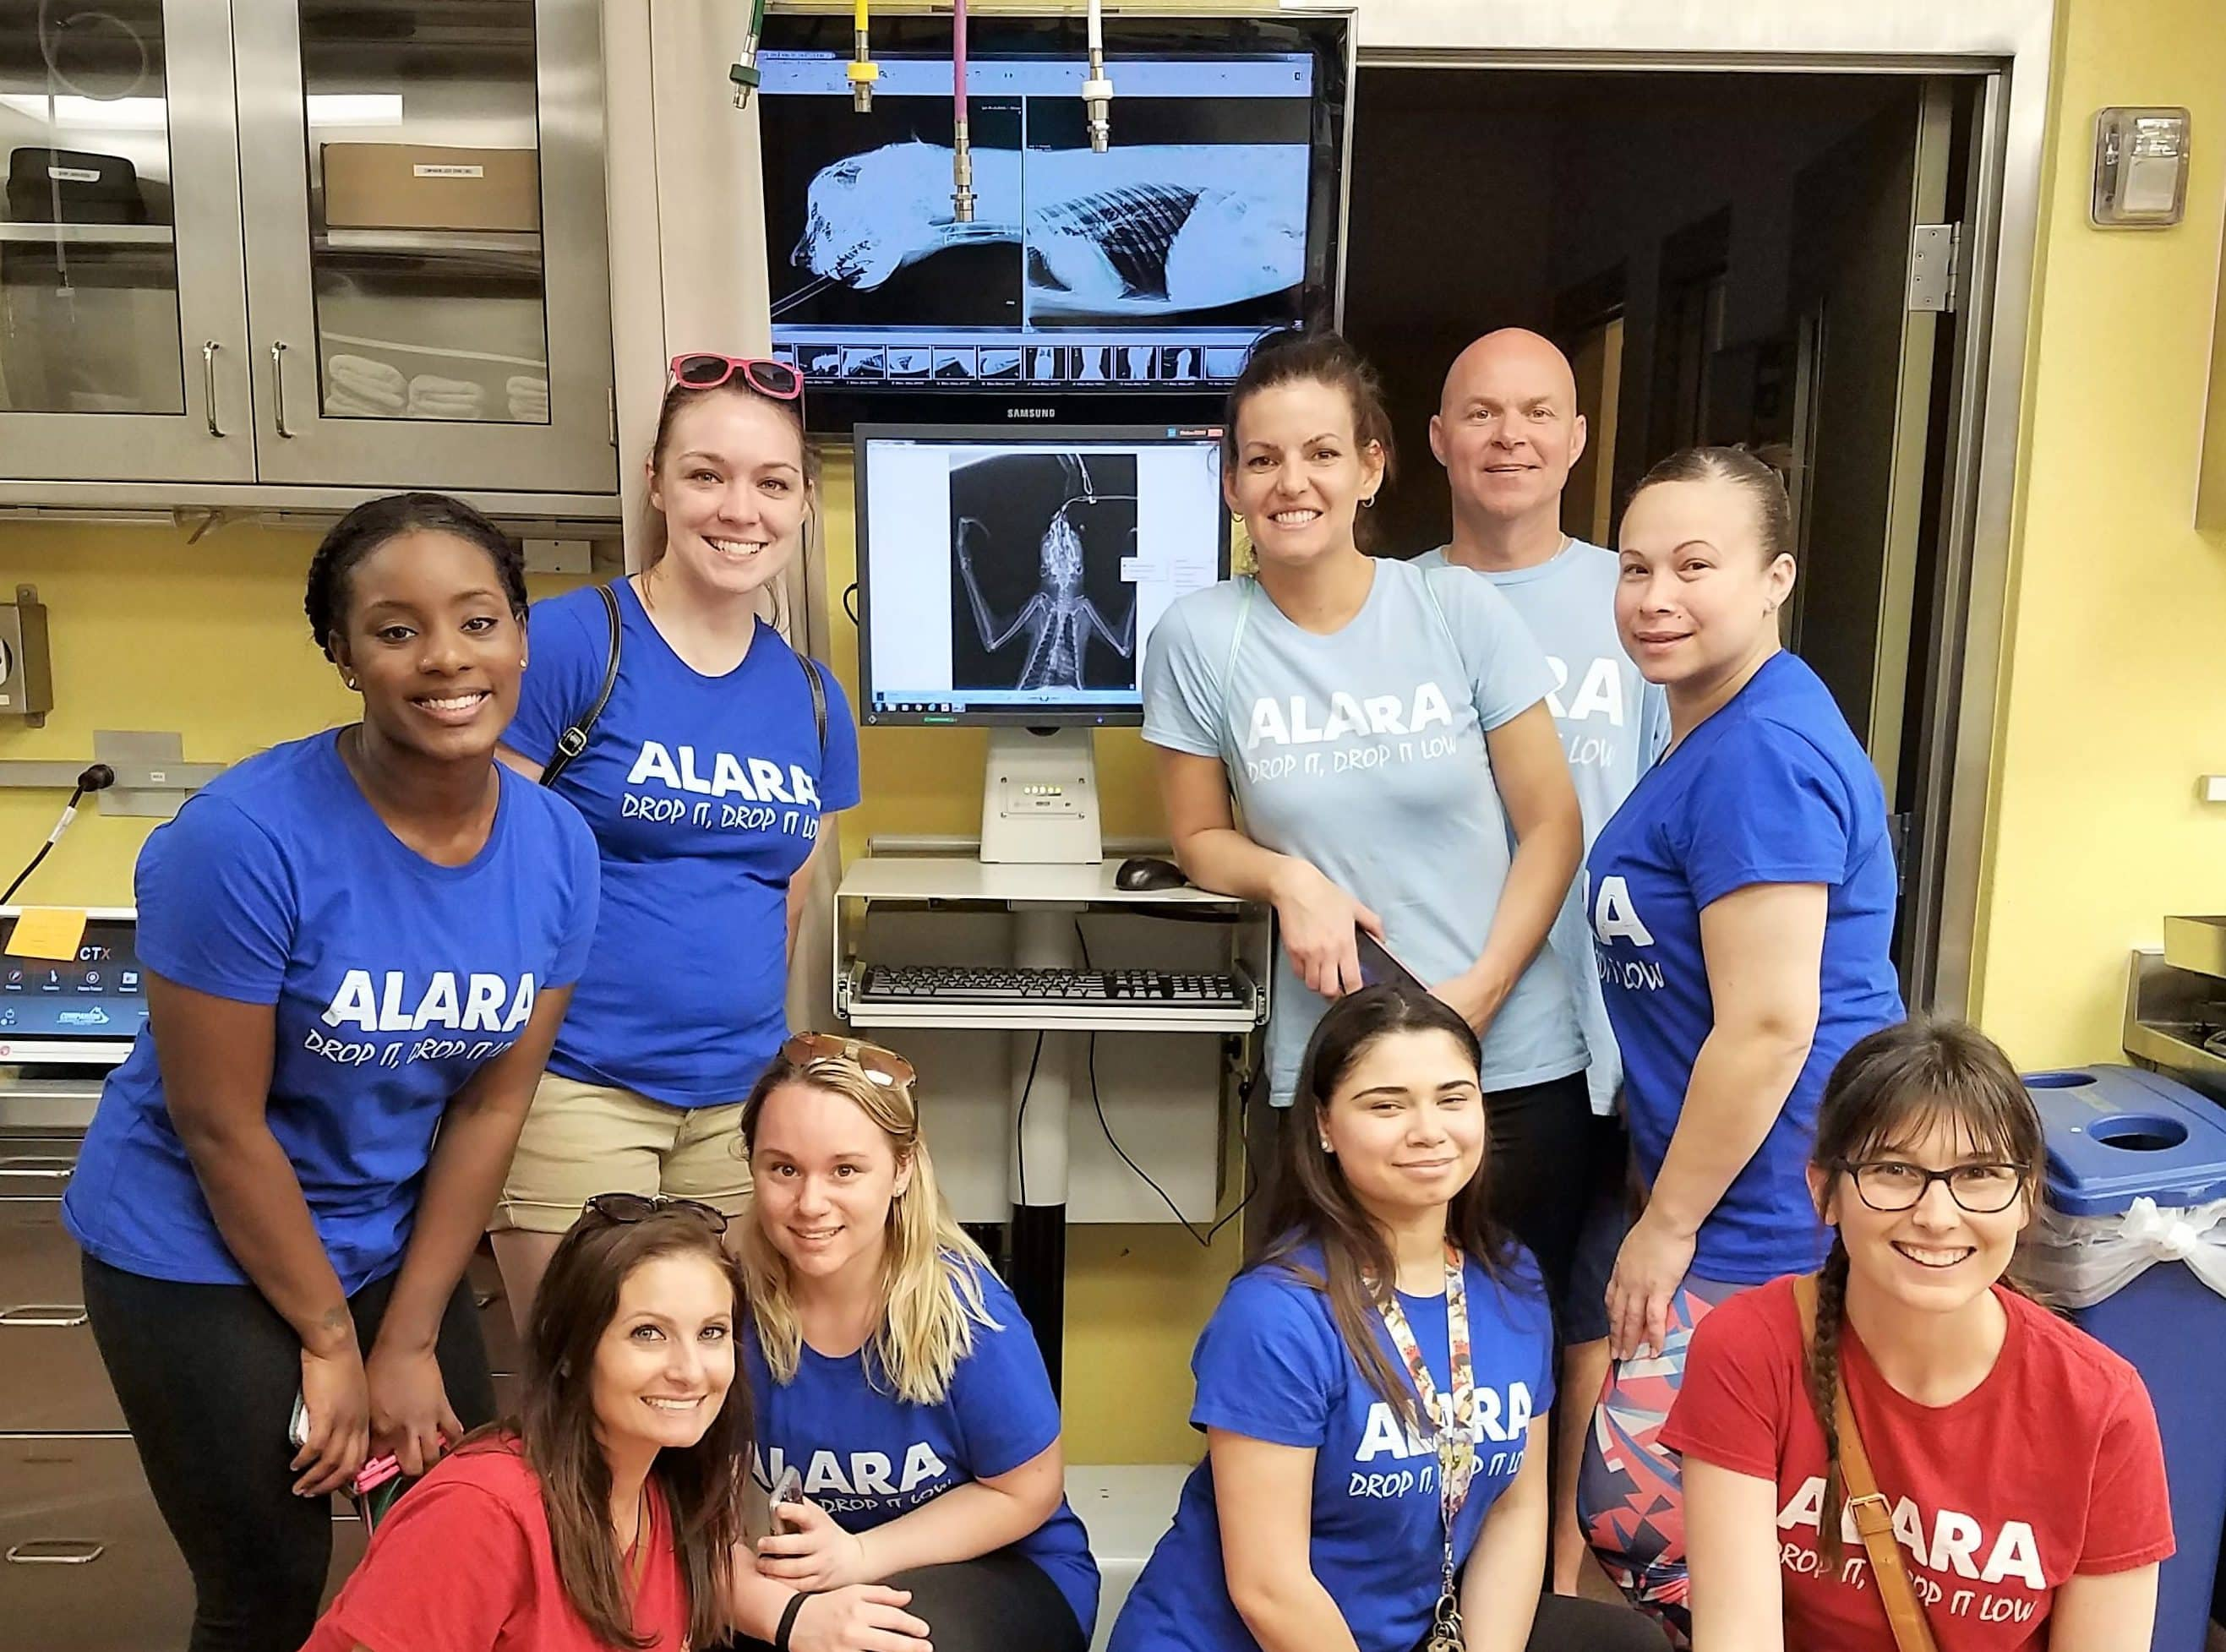 Radiologic Tech Students Learn About Zoological X-rays on Field Trip